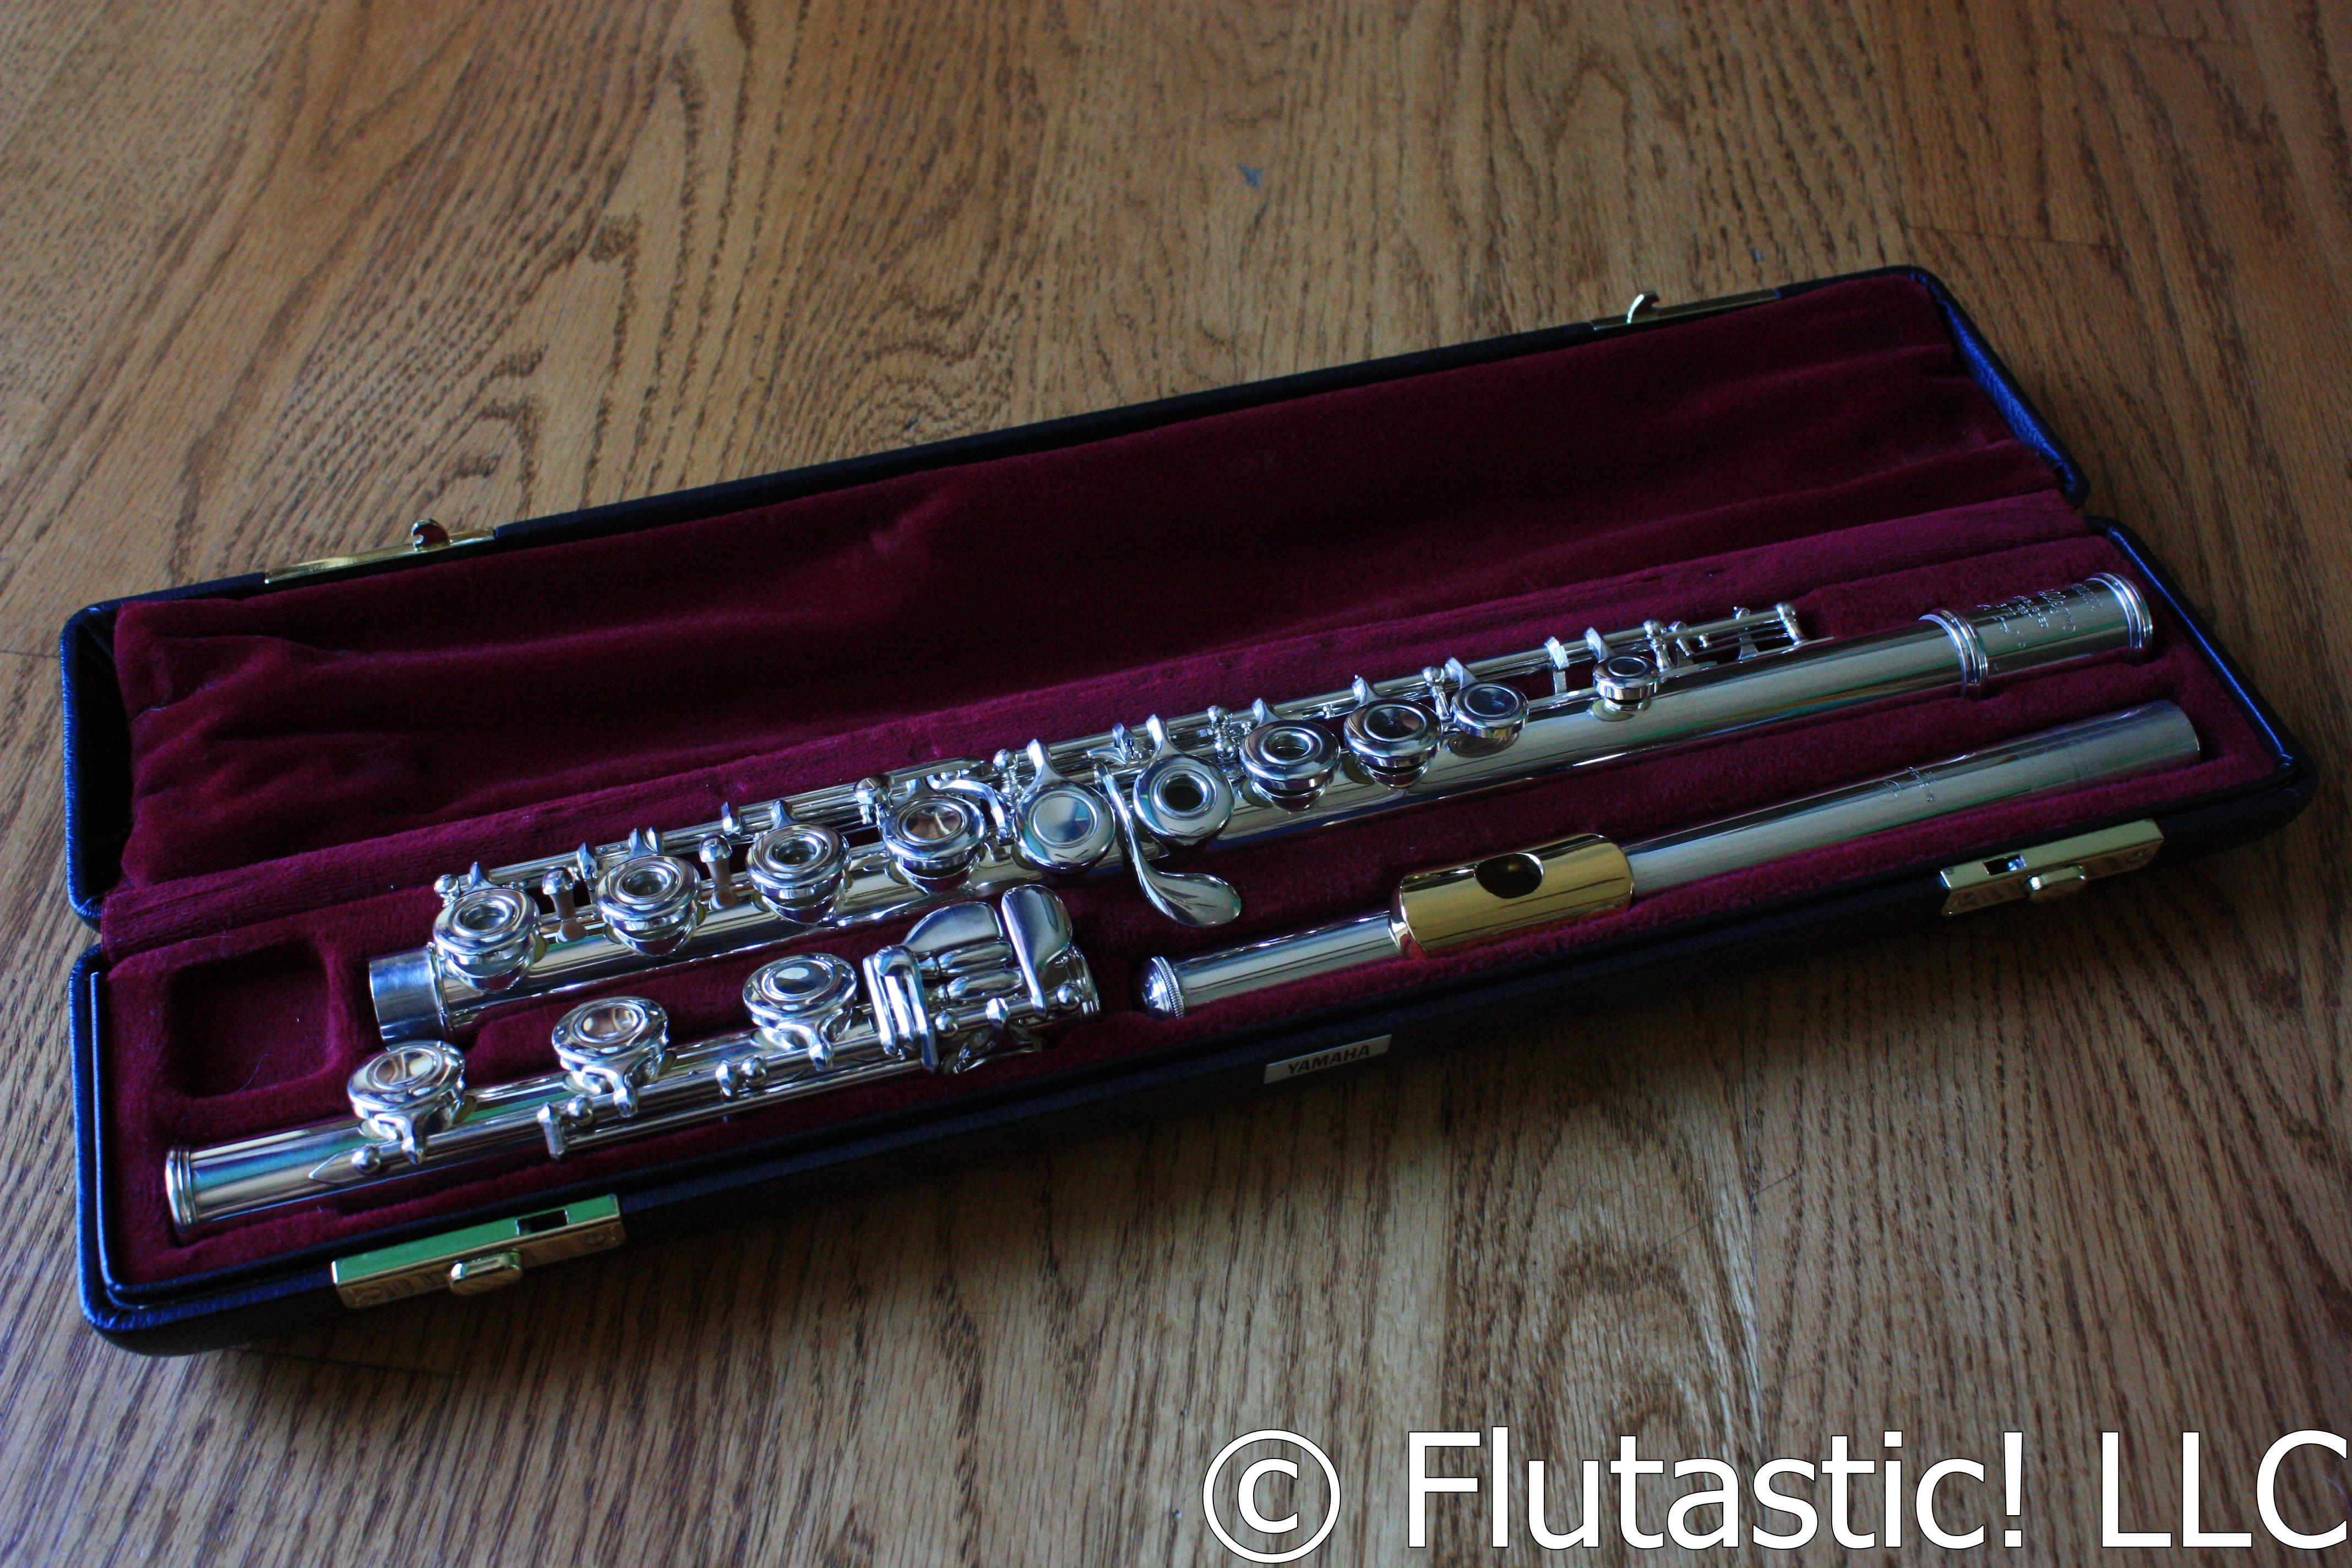 sold allegro 371 flute used excellent condition flutastic top quality used flutes and. Black Bedroom Furniture Sets. Home Design Ideas